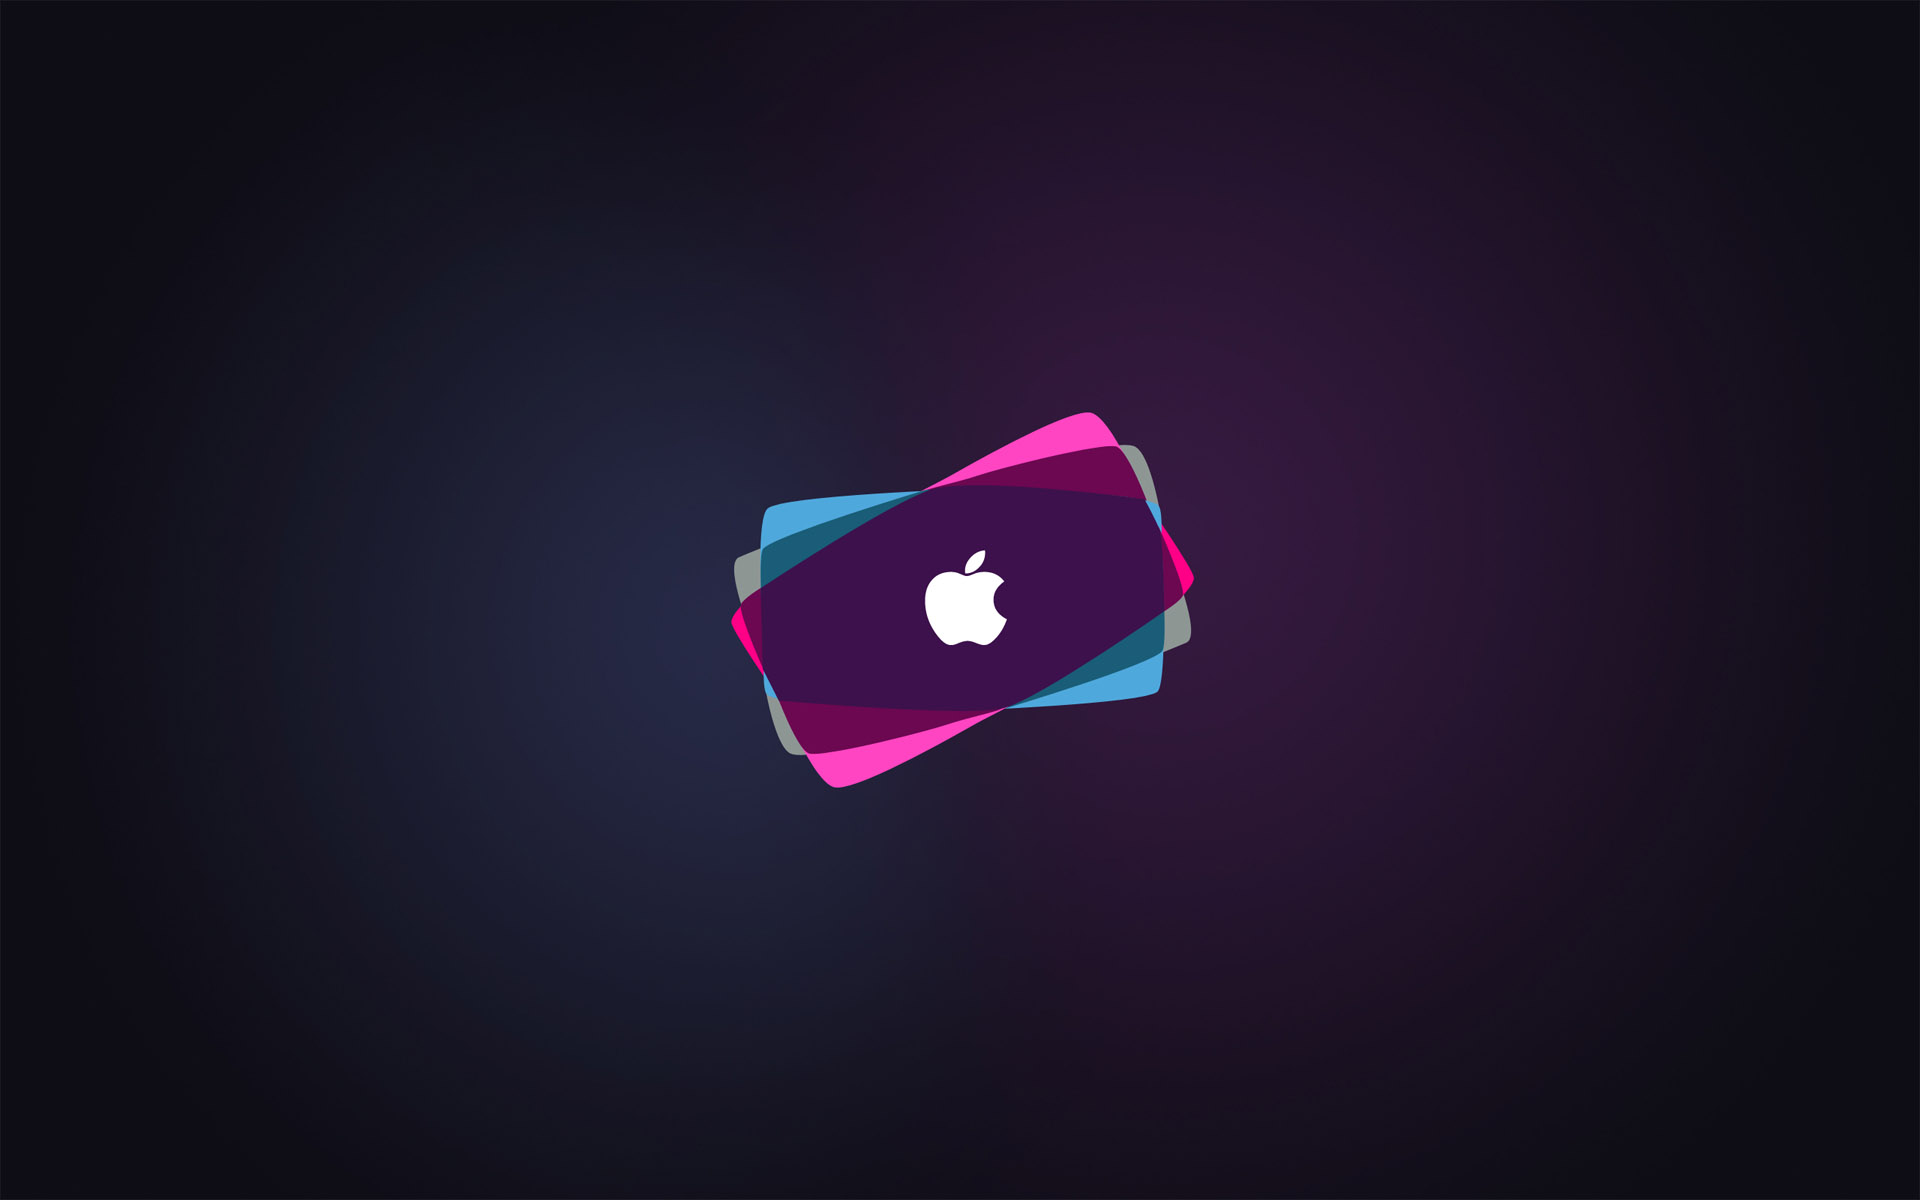 HD Apple wallpaper 18385